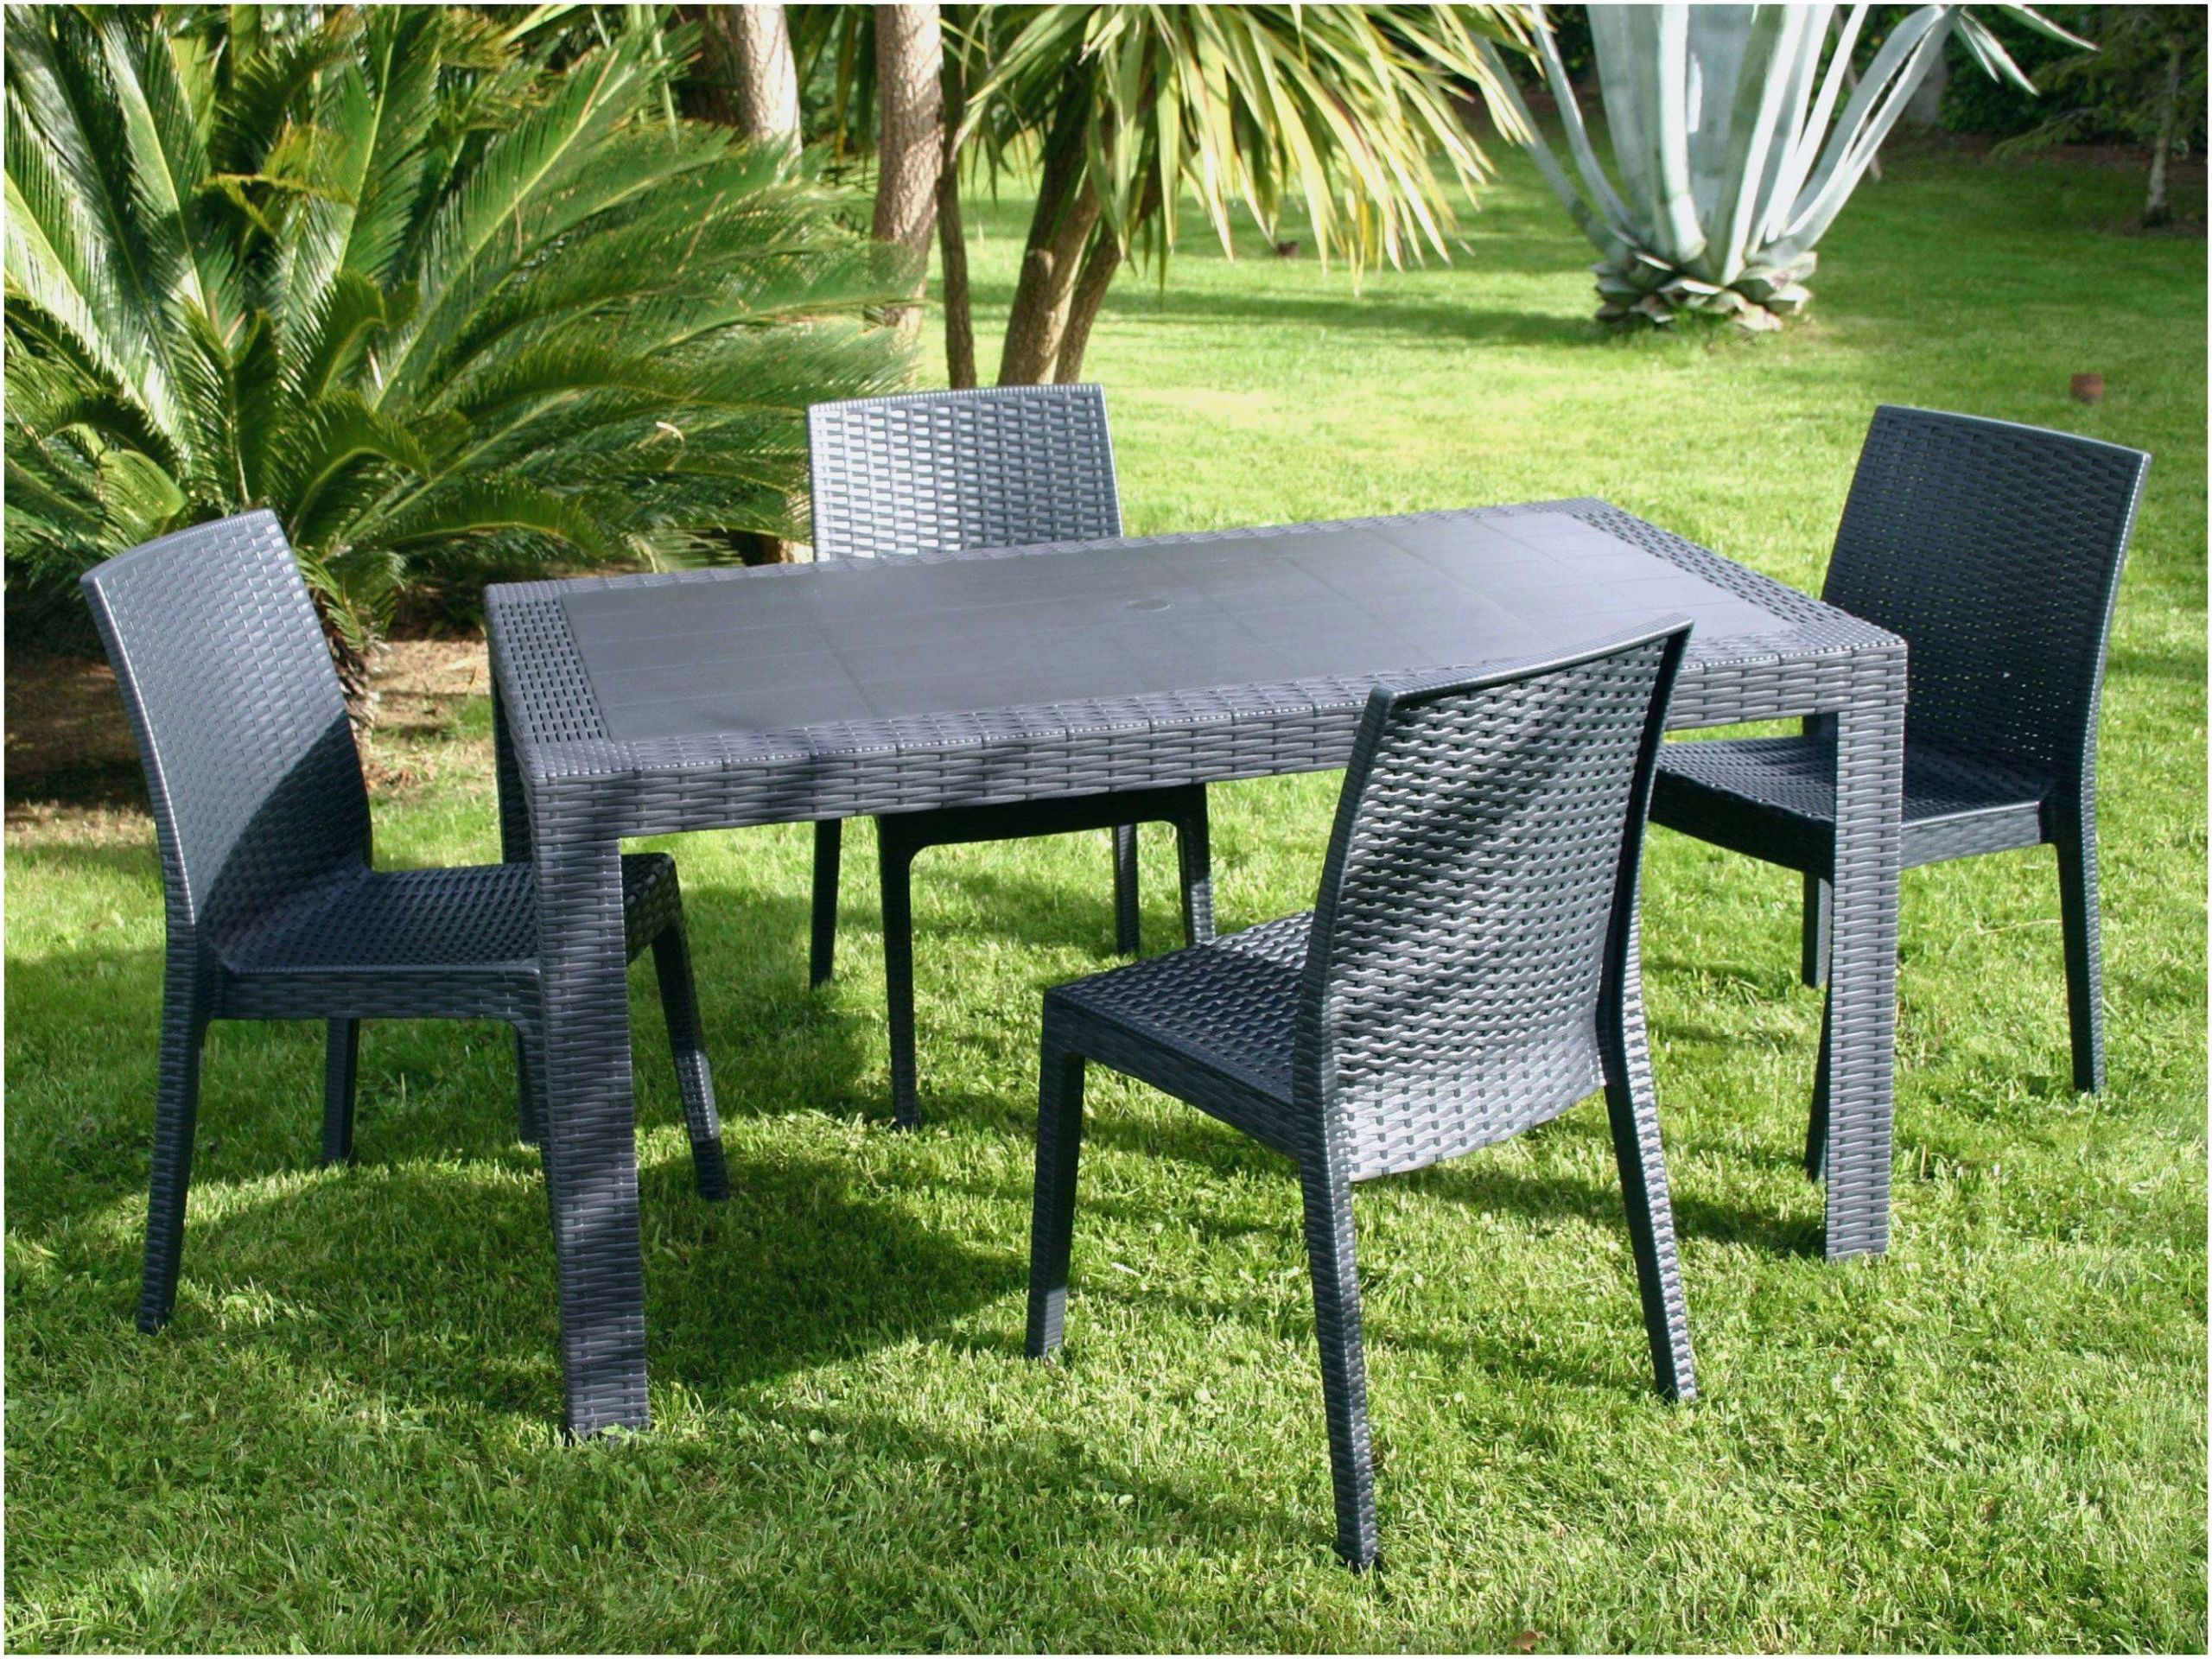 carrefour table pliante chaise jardin beau ensemble table de jardin pas cher elegant ensemble table et chaise elegant chaise jardin nouveau 28 meilleur de collection de carrefour chaise pour